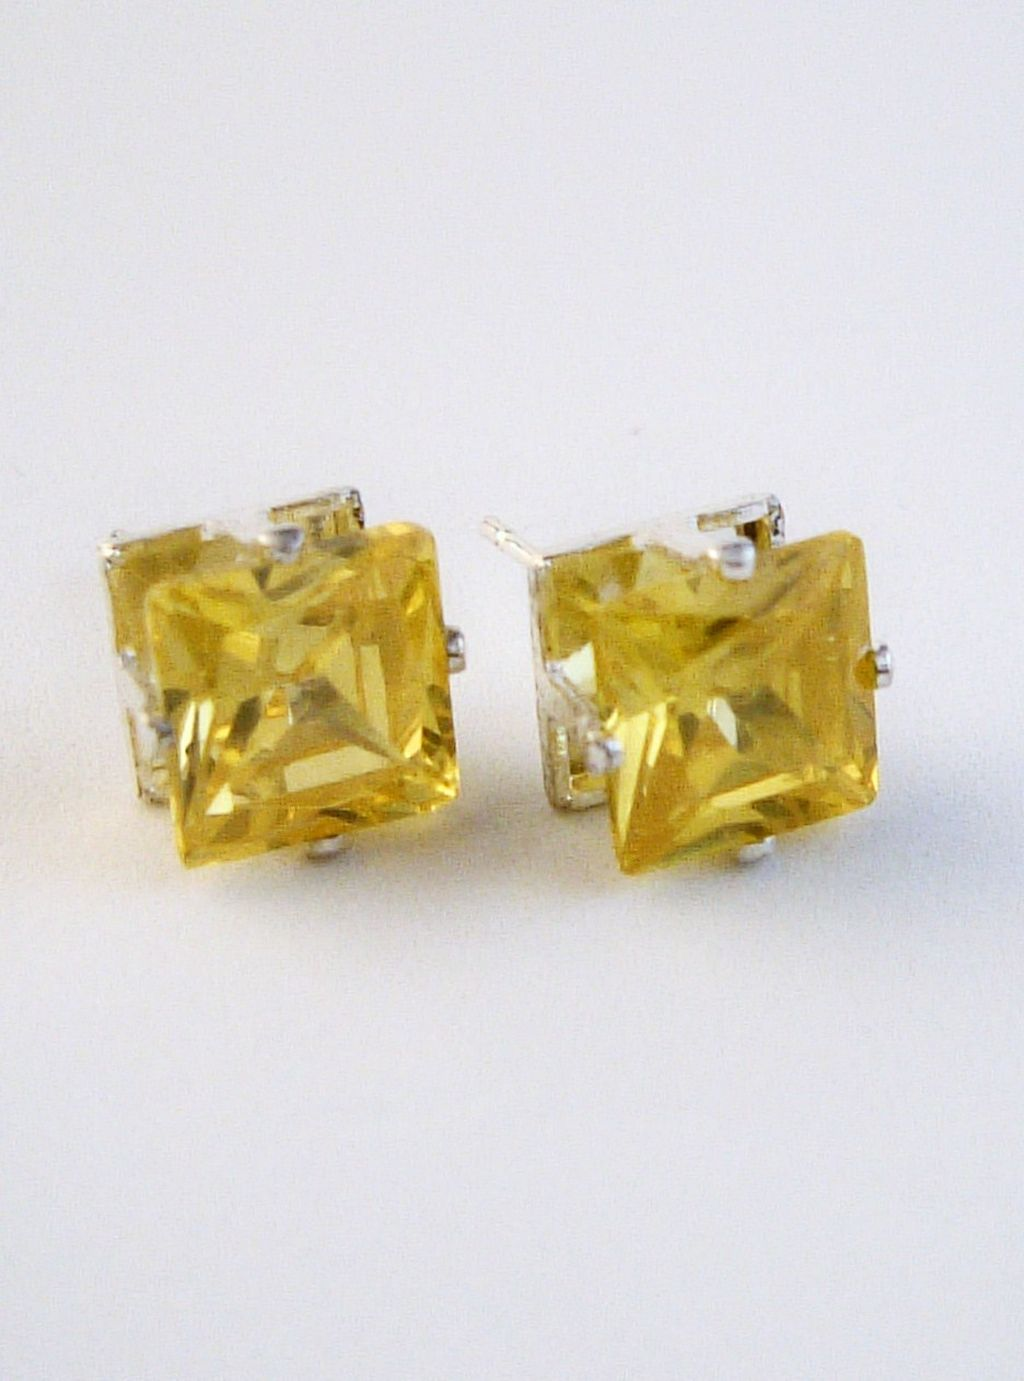 Yellow Sapphire Princess Cut Silver Stud Earrings Genuine CZ Cubic Zirconia